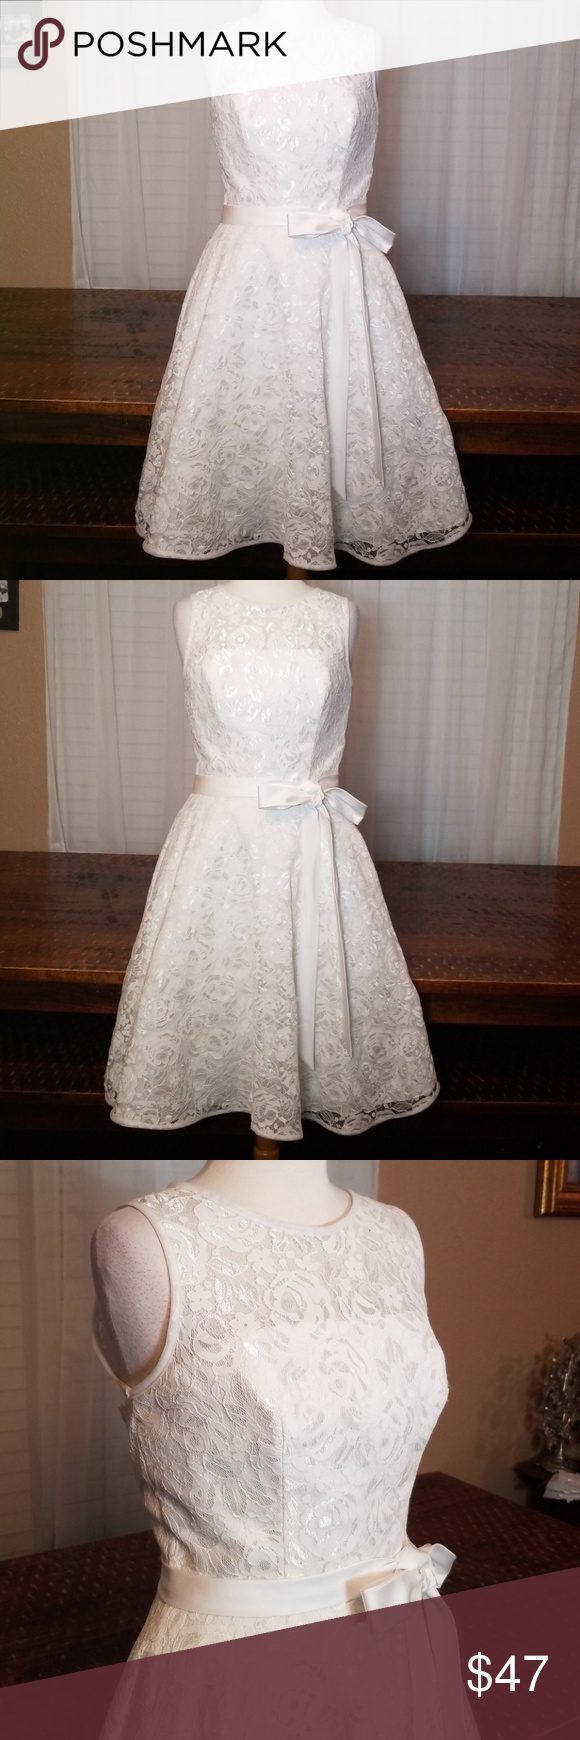 White lace Wedding, Formal, Bridesmaid dress sz 6 Andrew Adela sz 6 white lace formal Sz 6 Nwot Perfect for a formal, a wedding dress, bridesmaid dress, or flower girl dress. Could also be worn as a confirmation dress or for any other formal. Andrew Adela Dresses Wedding #confirmationdresses White lace Wedding, Formal, Bridesmaid dress sz 6 Andrew Adela sz 6 white lace formal Sz 6 Nwot Perfect for a formal, a wedding dress, bridesmaid dress, or flower girl dress. Could also be worn as a confirma #confirmationdresses